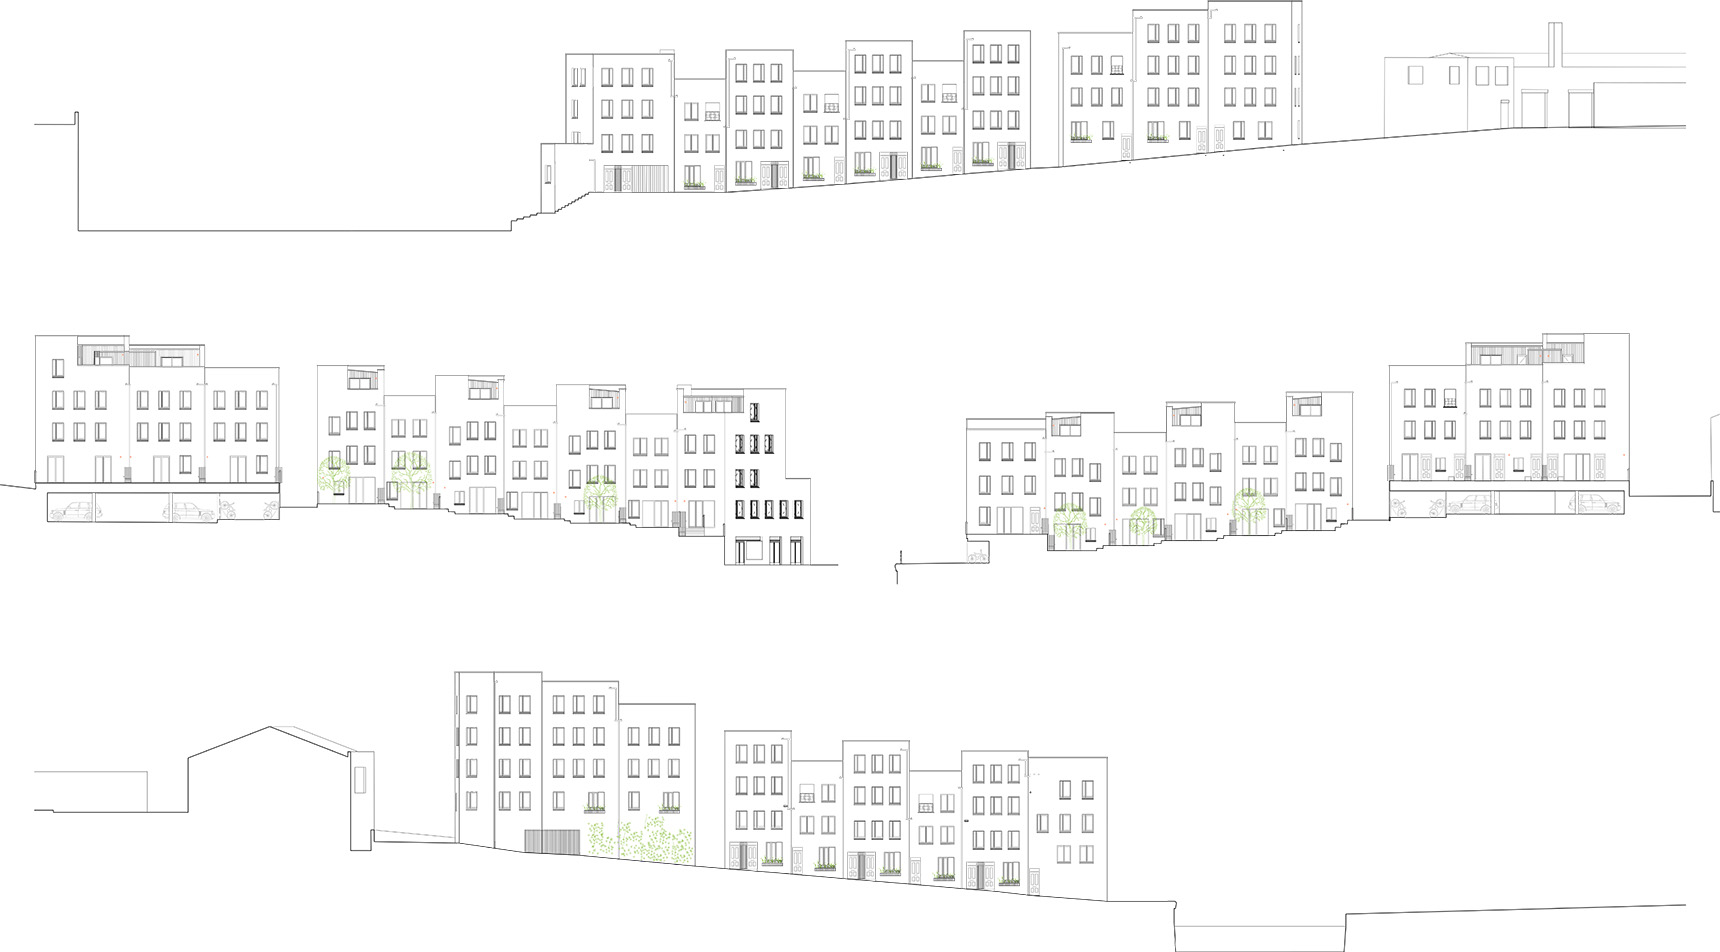 The Malings Newcastle elevation drawings